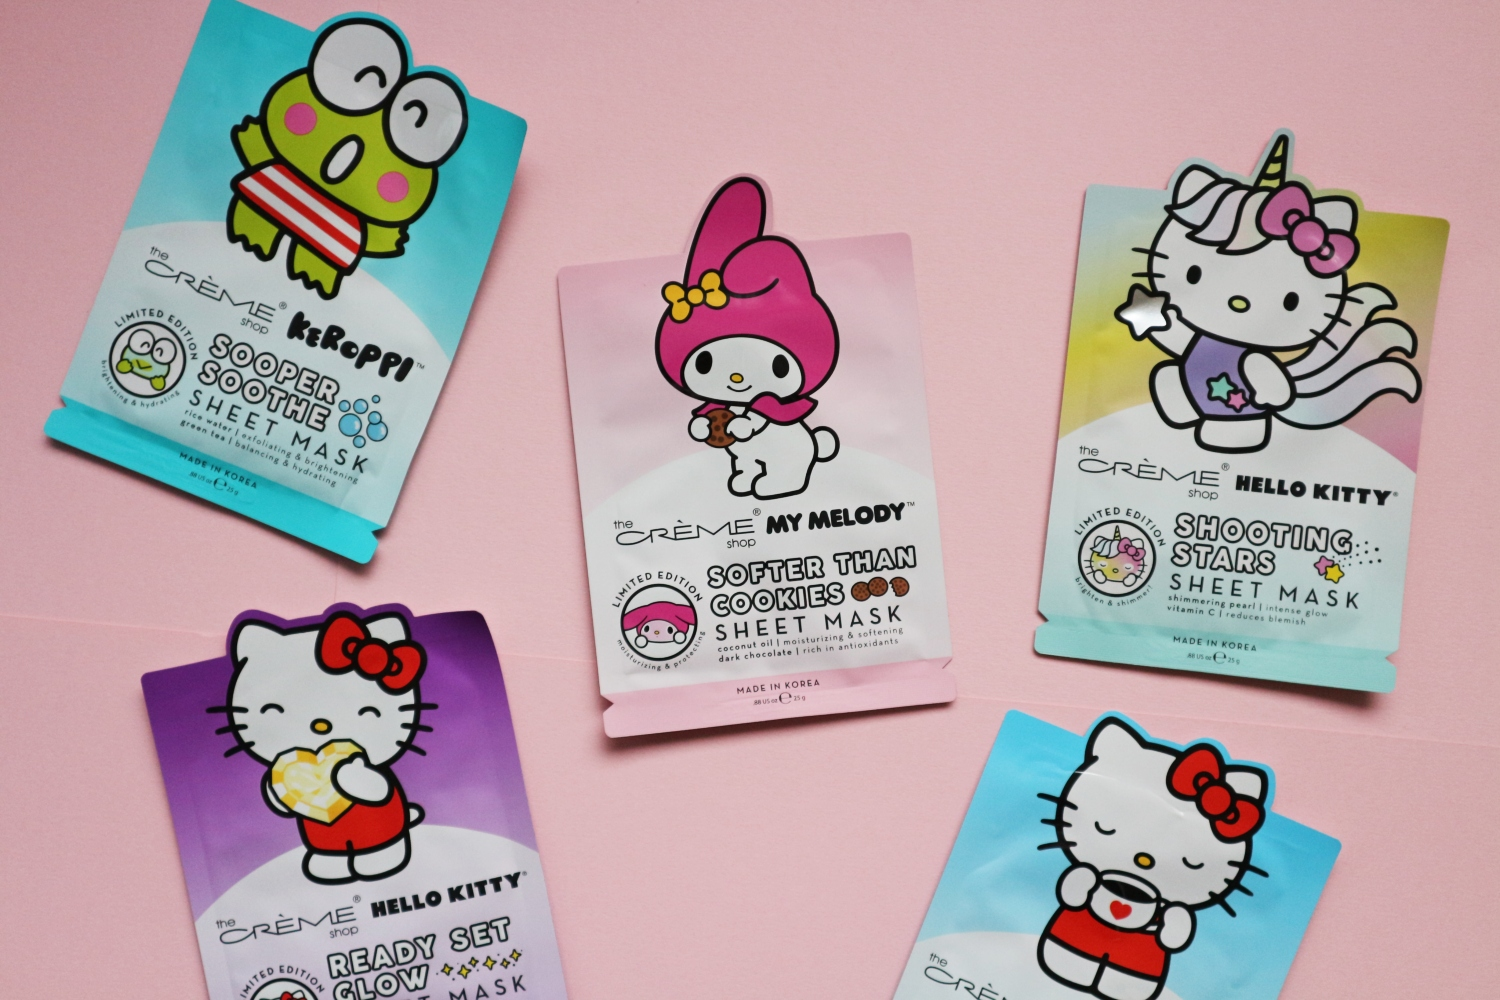 the creme shop hello kitty sheet mask